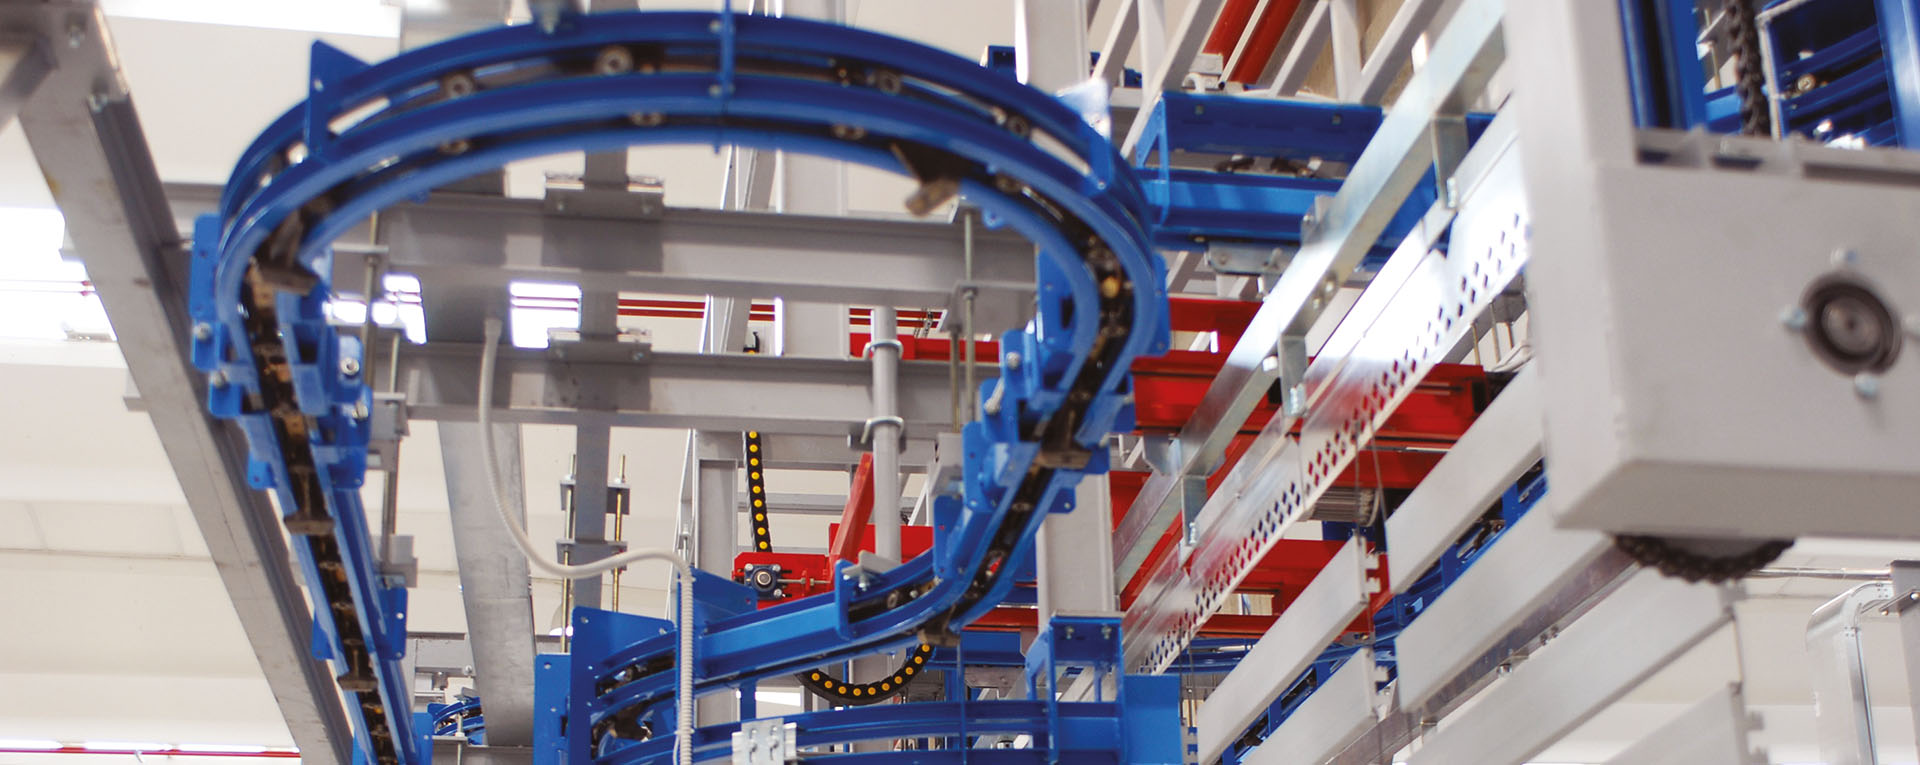 production_conveyors